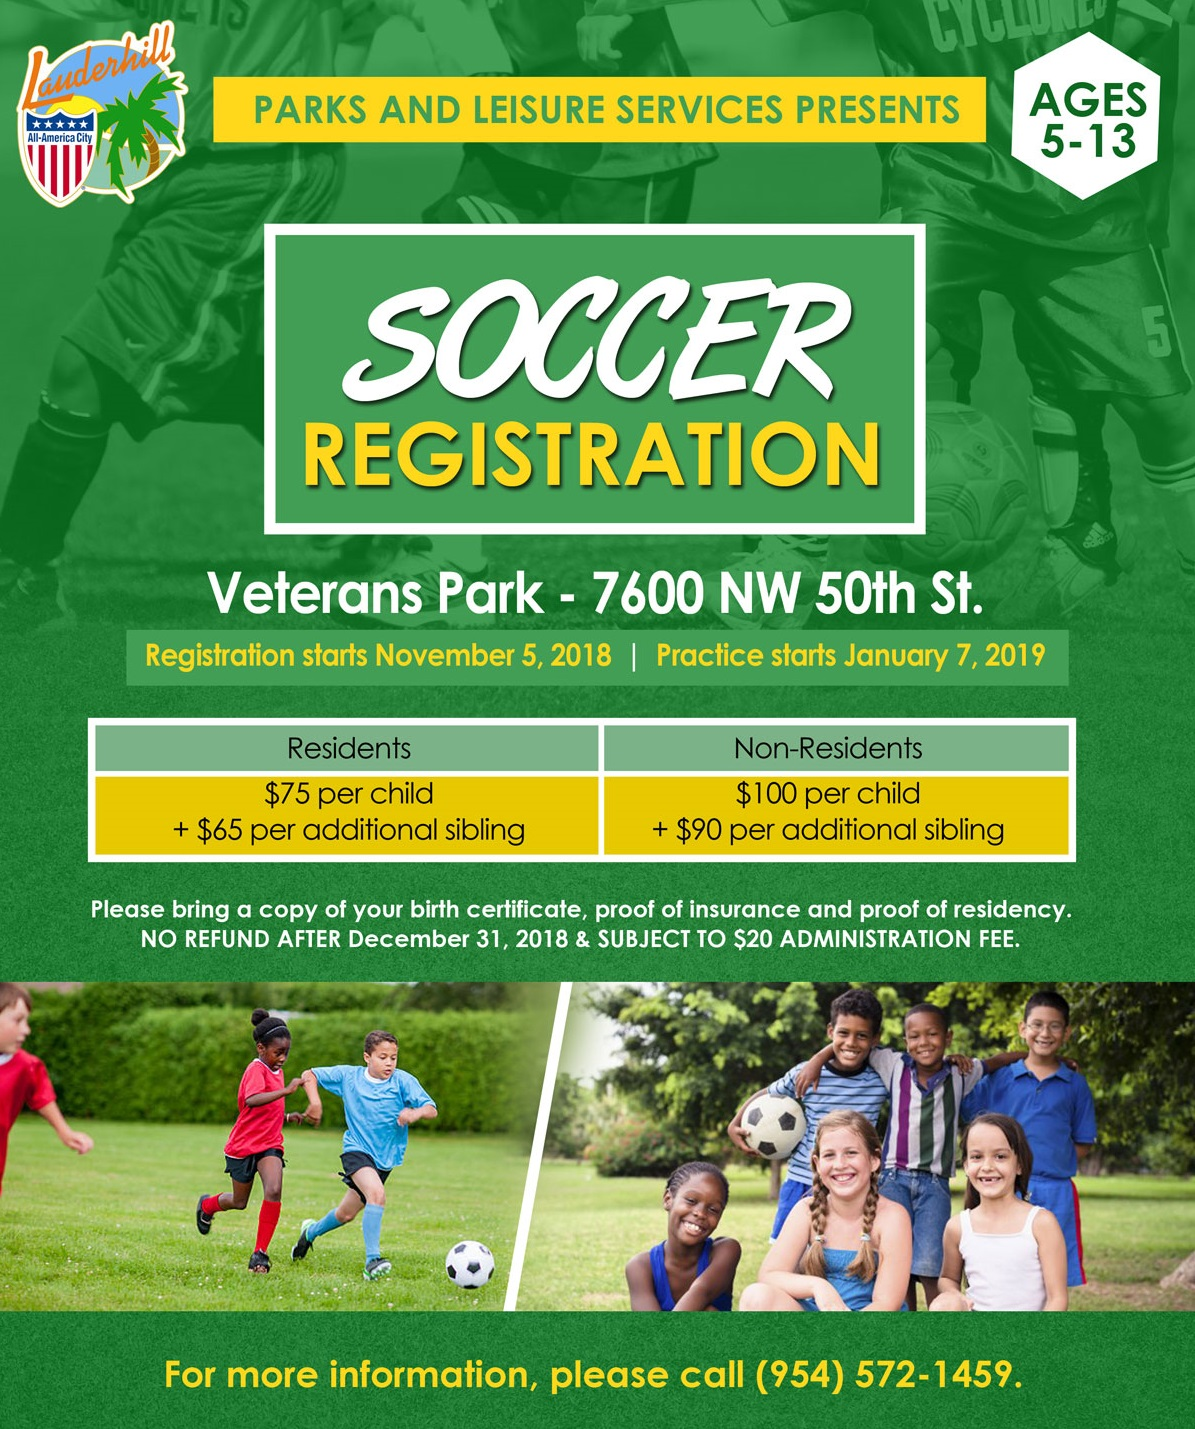 2016-17 Youth Soccer Recreation Registration Flyer